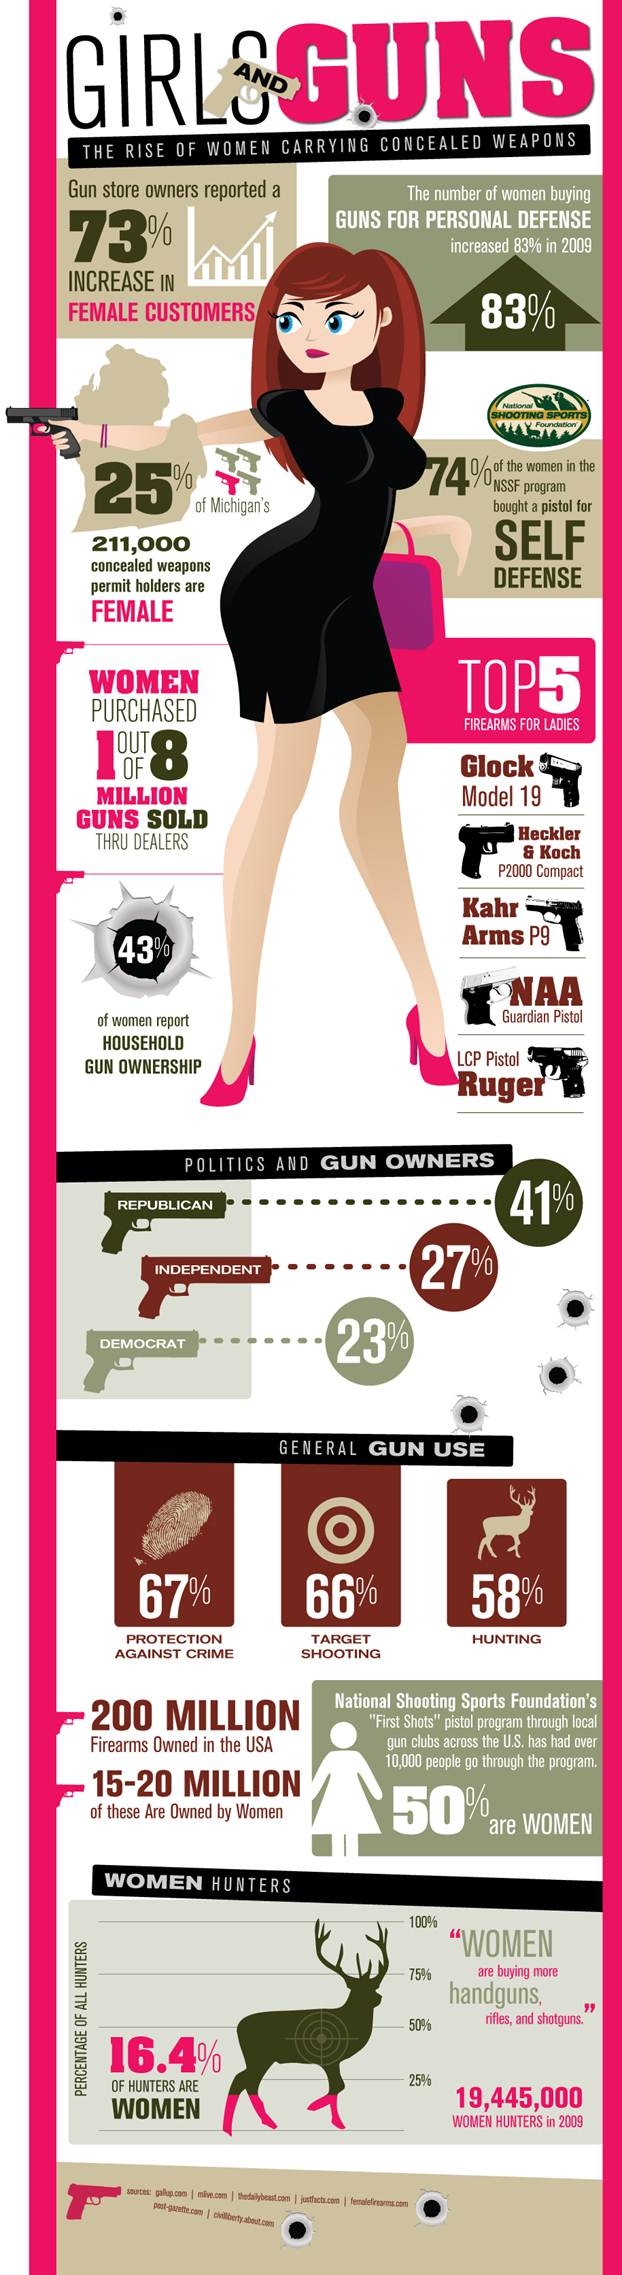 Girls and Guns – The Rise Of Women Carrying Concealed Weapons